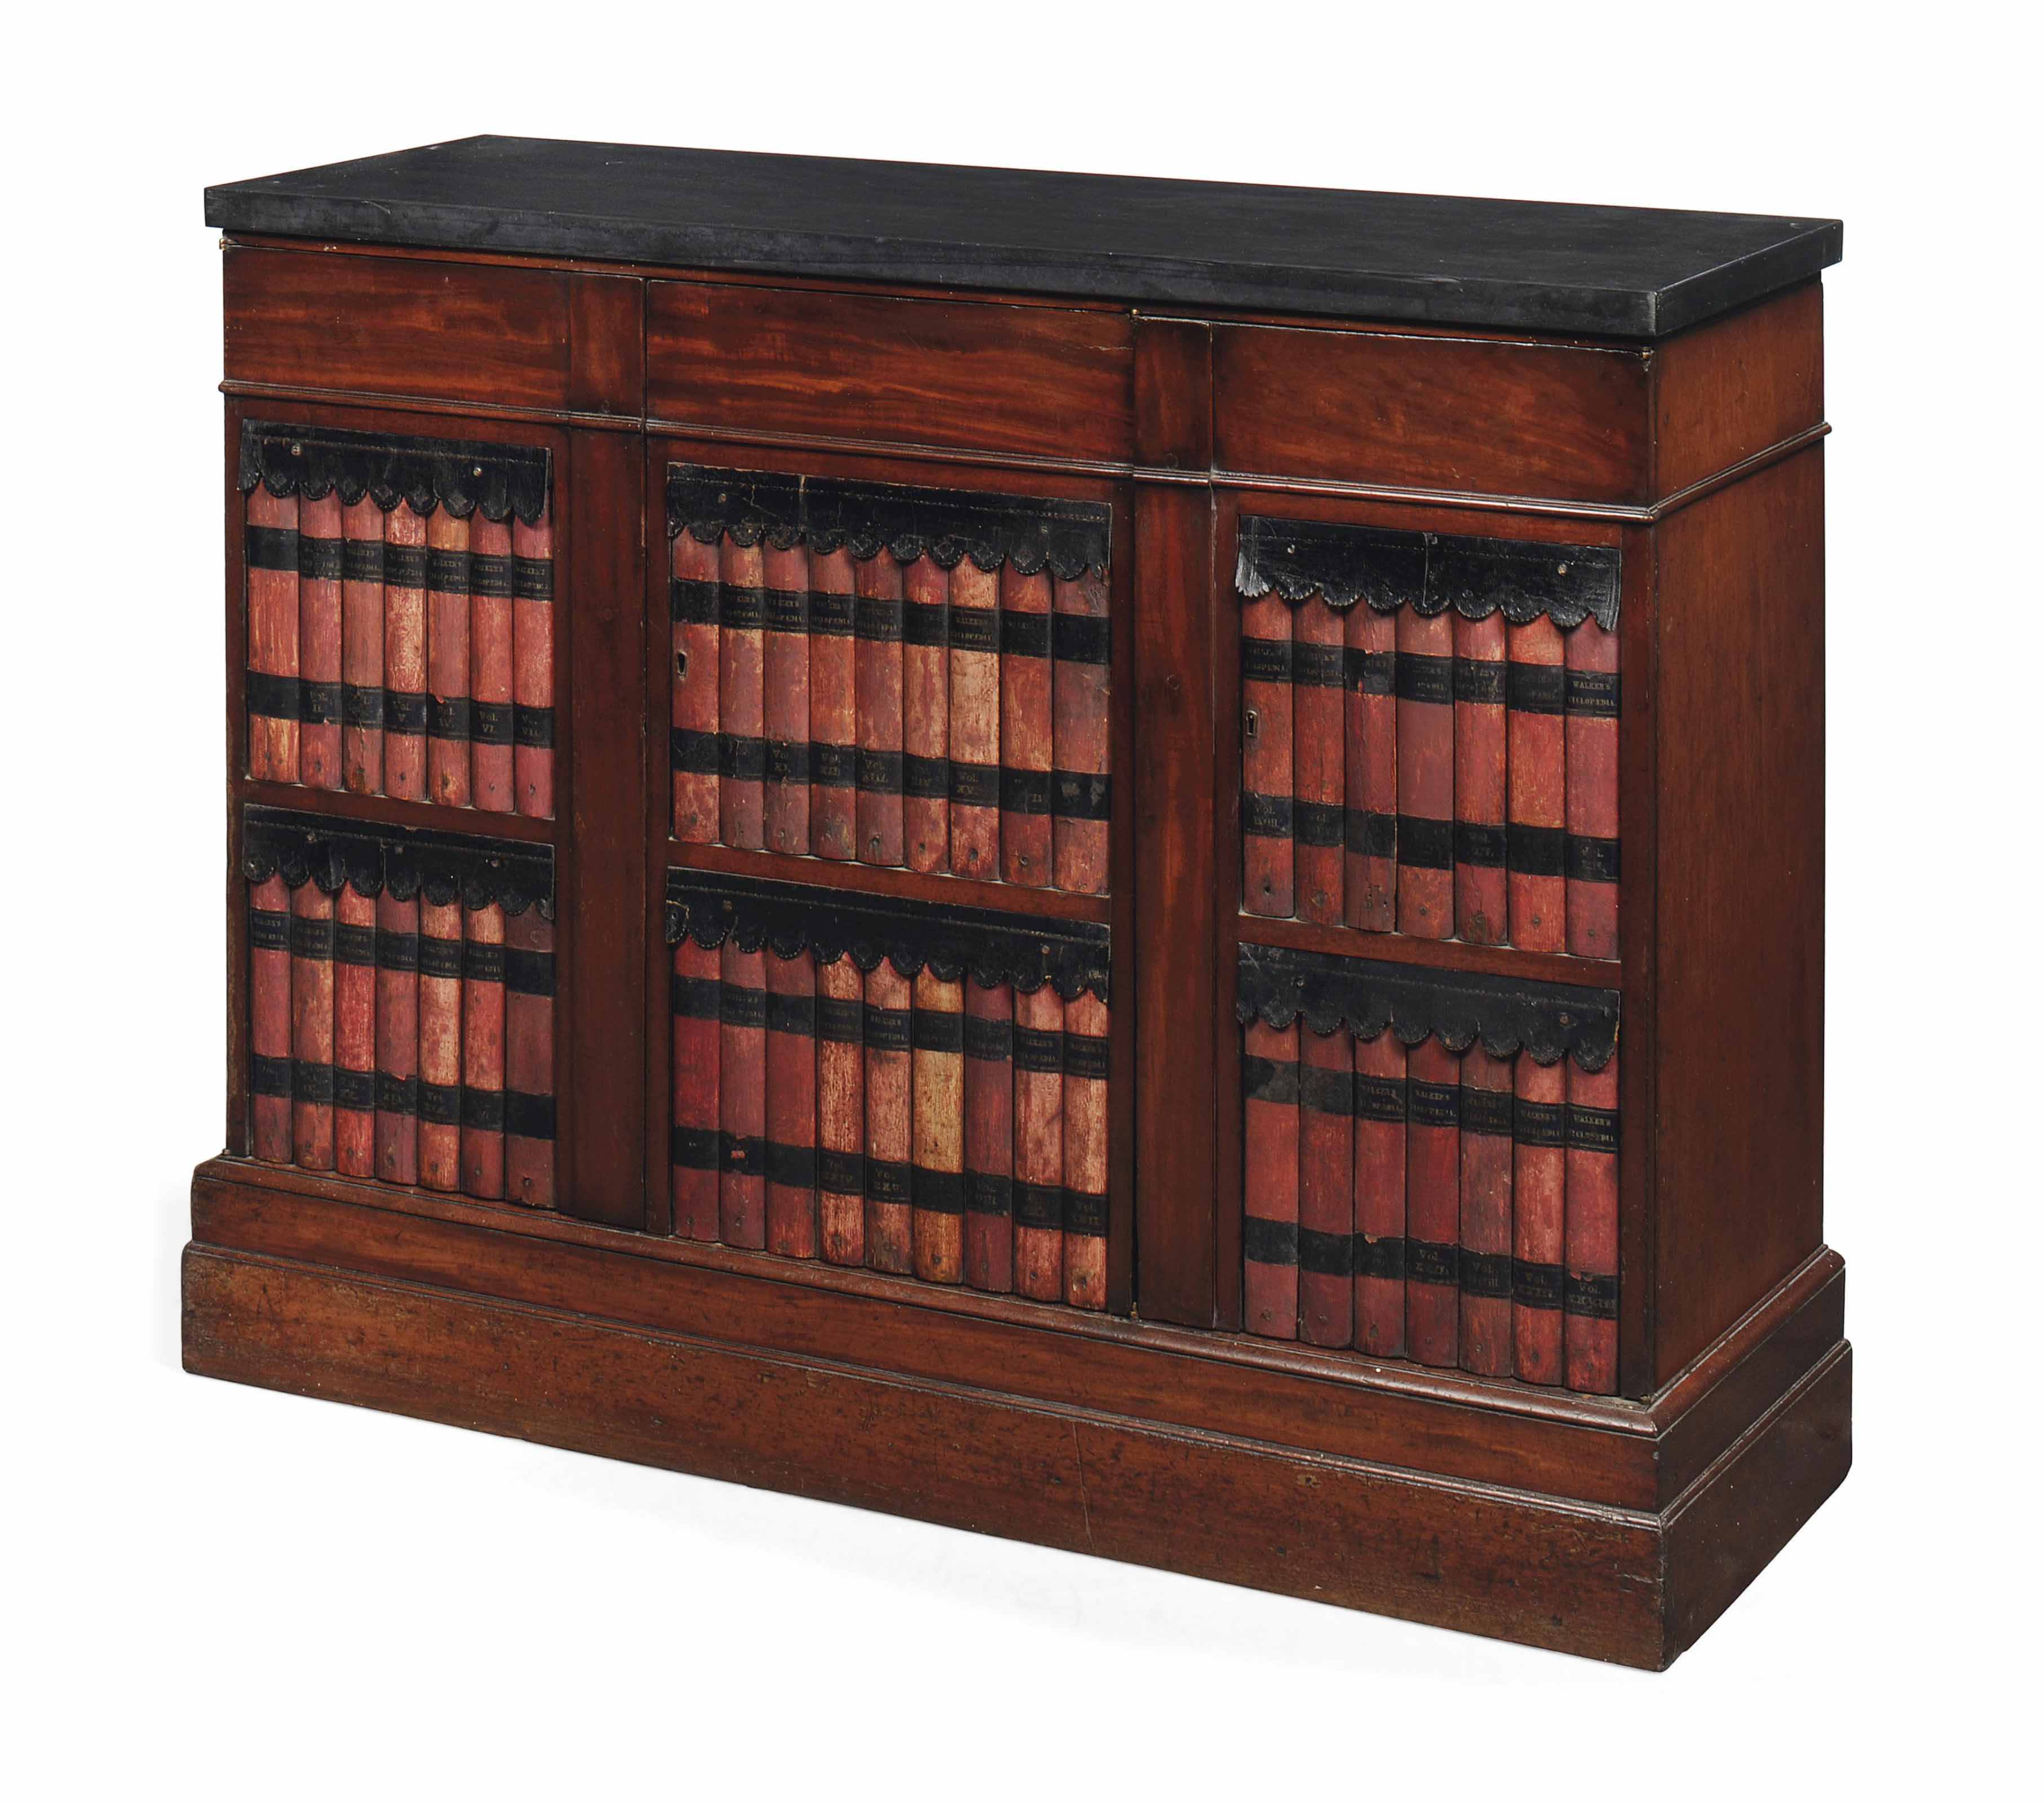 A MAHOGANY AND LEATHER MOUNTED